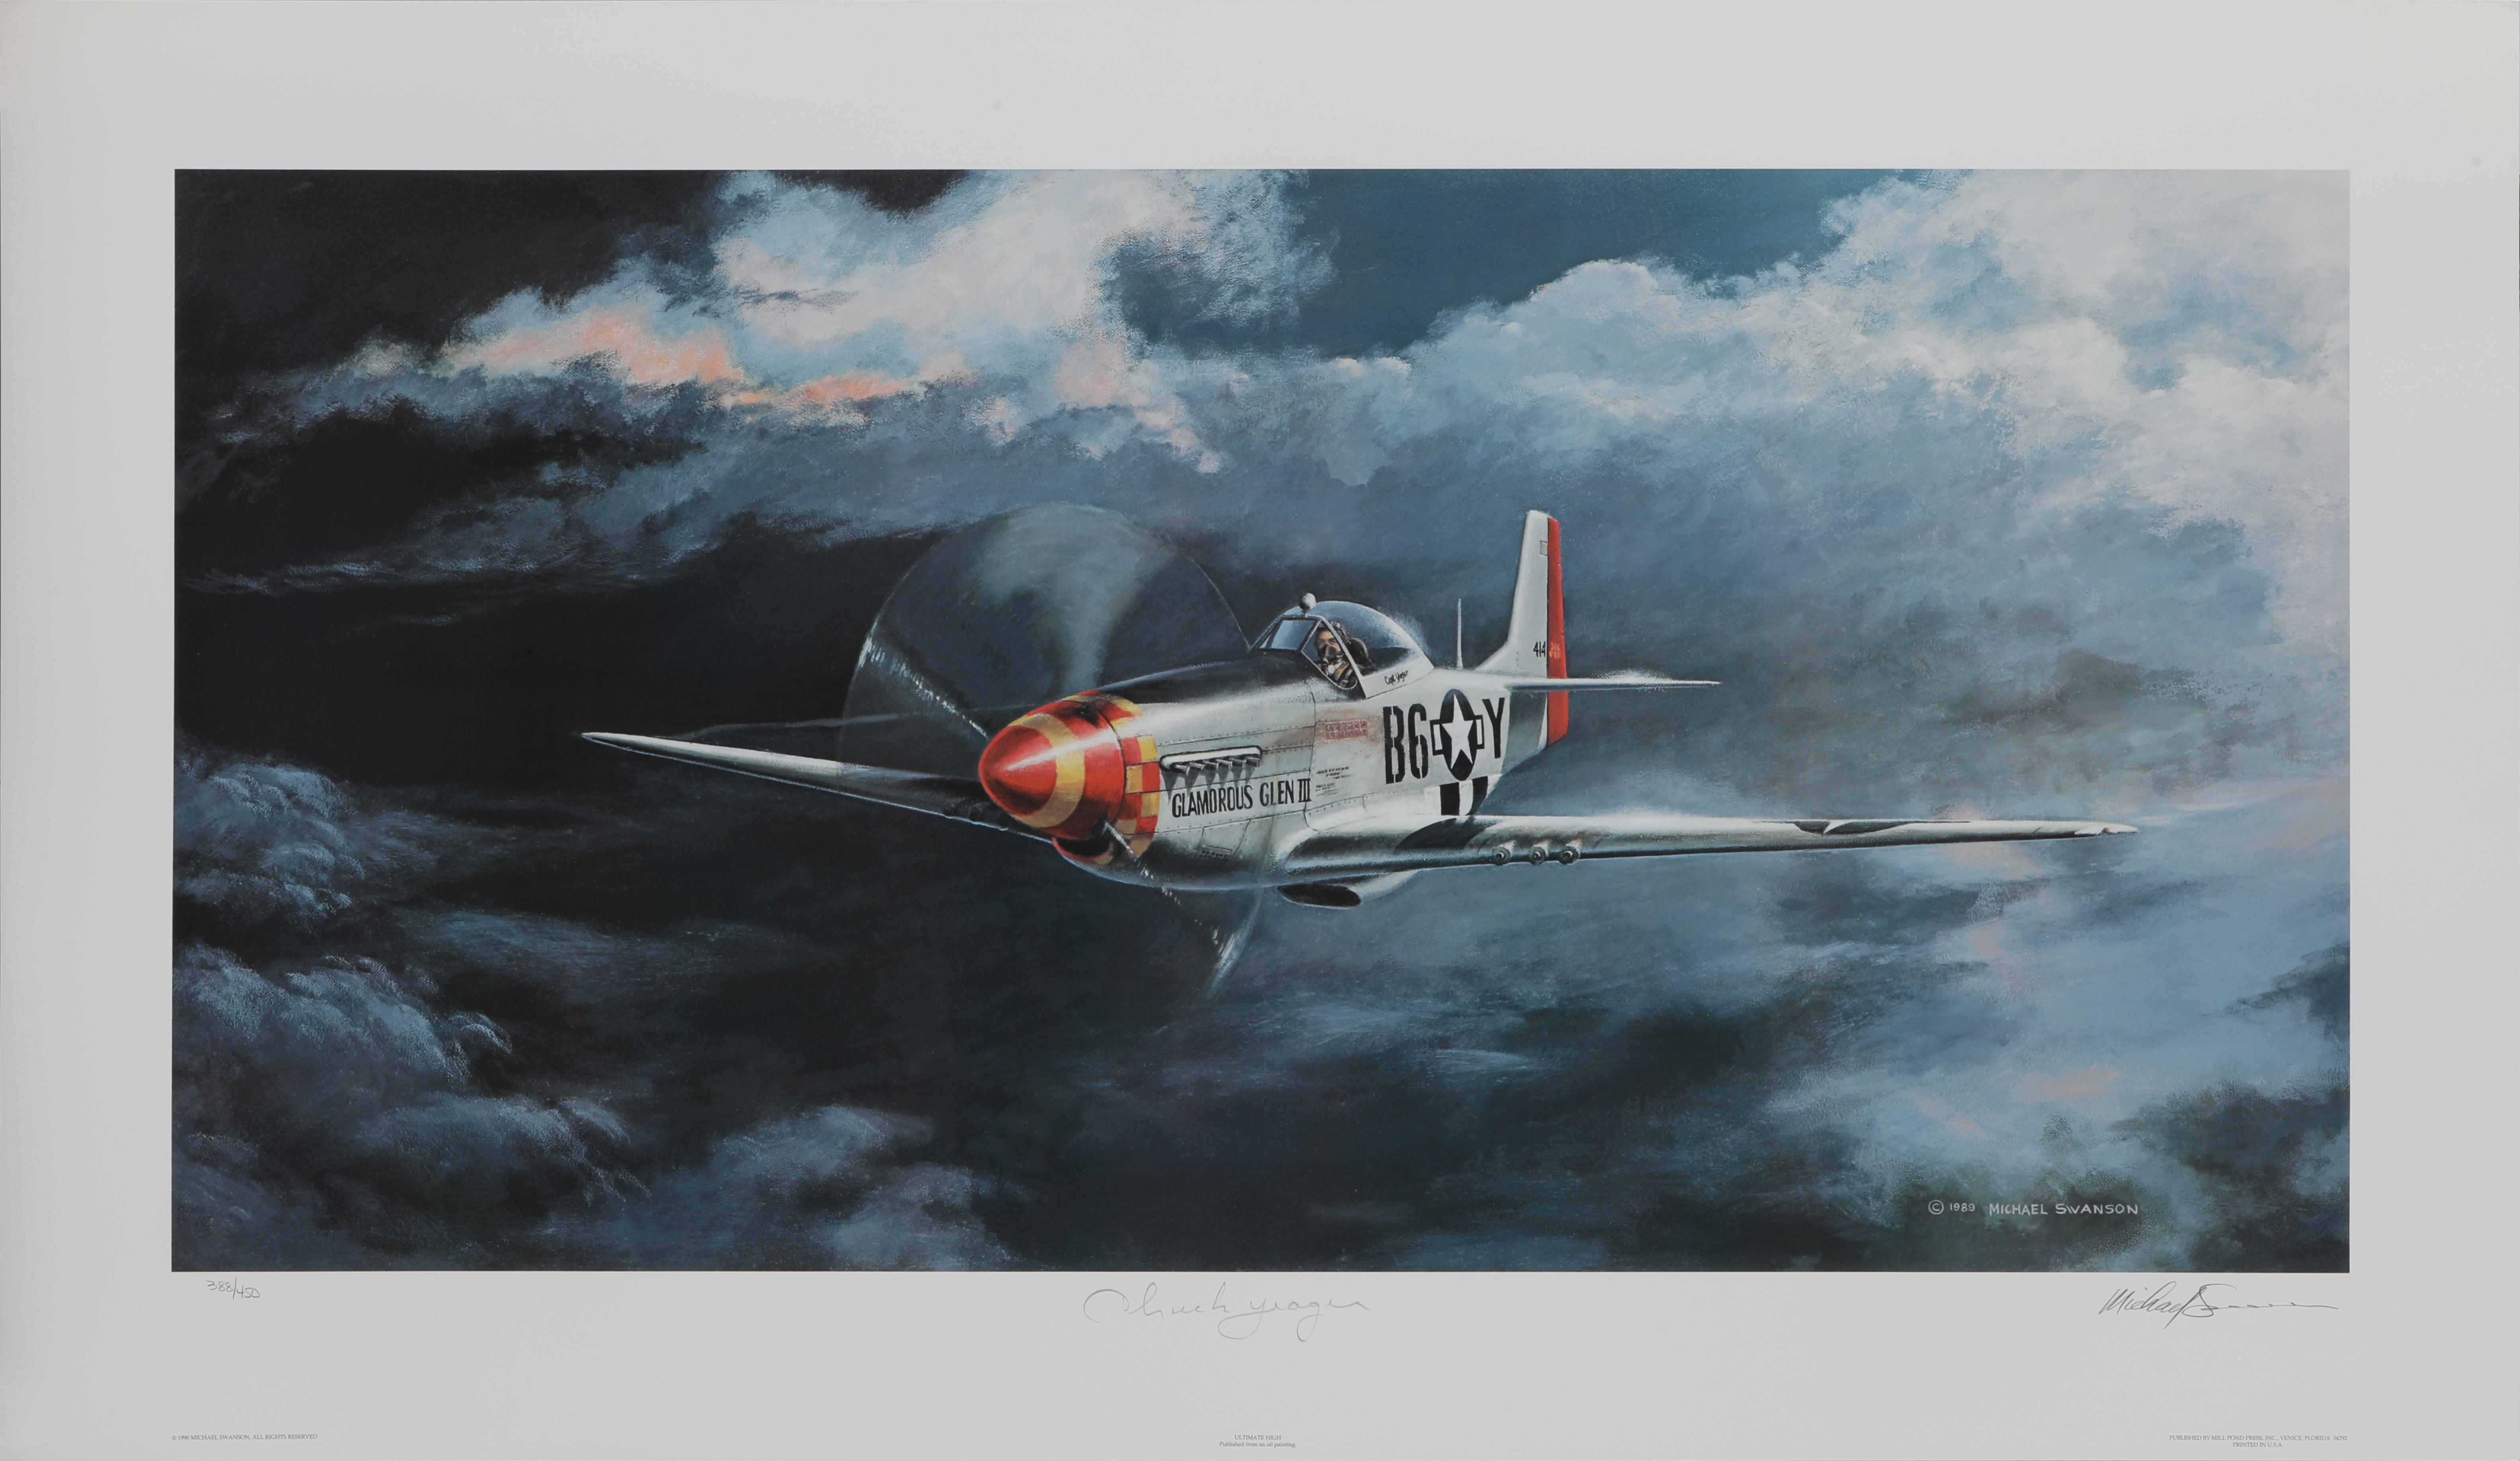 """Michael Swanson's """"Ultimate High"""" Limited Edition Print"""